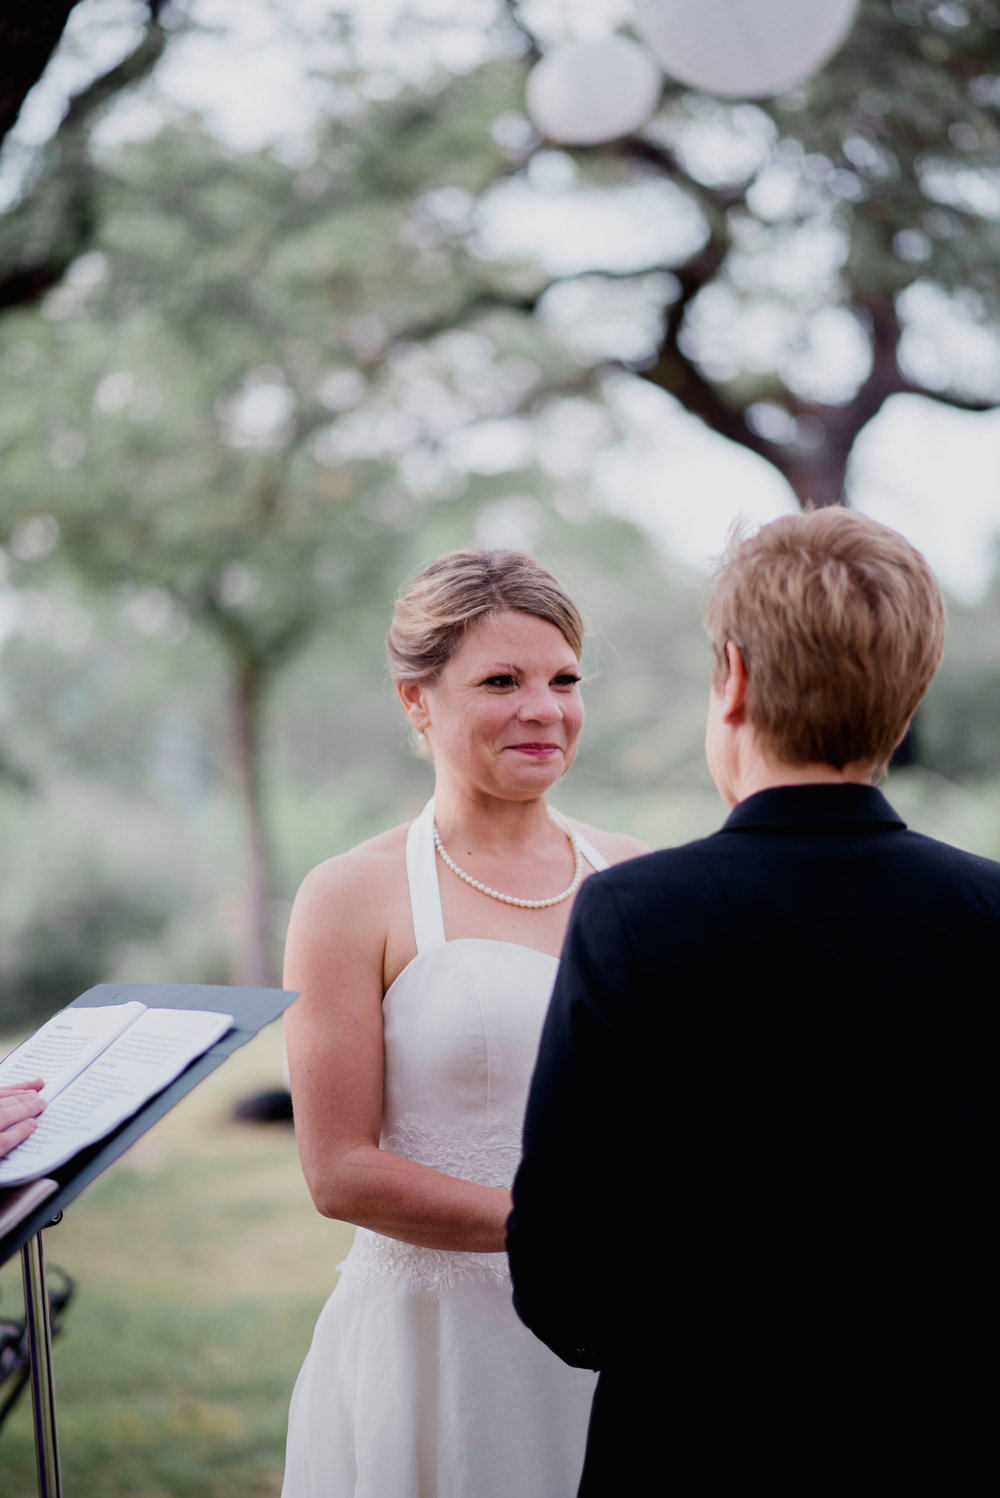 Austin Wedding Photographer Hacienda Del Lago LBGT Elegant033.jpg